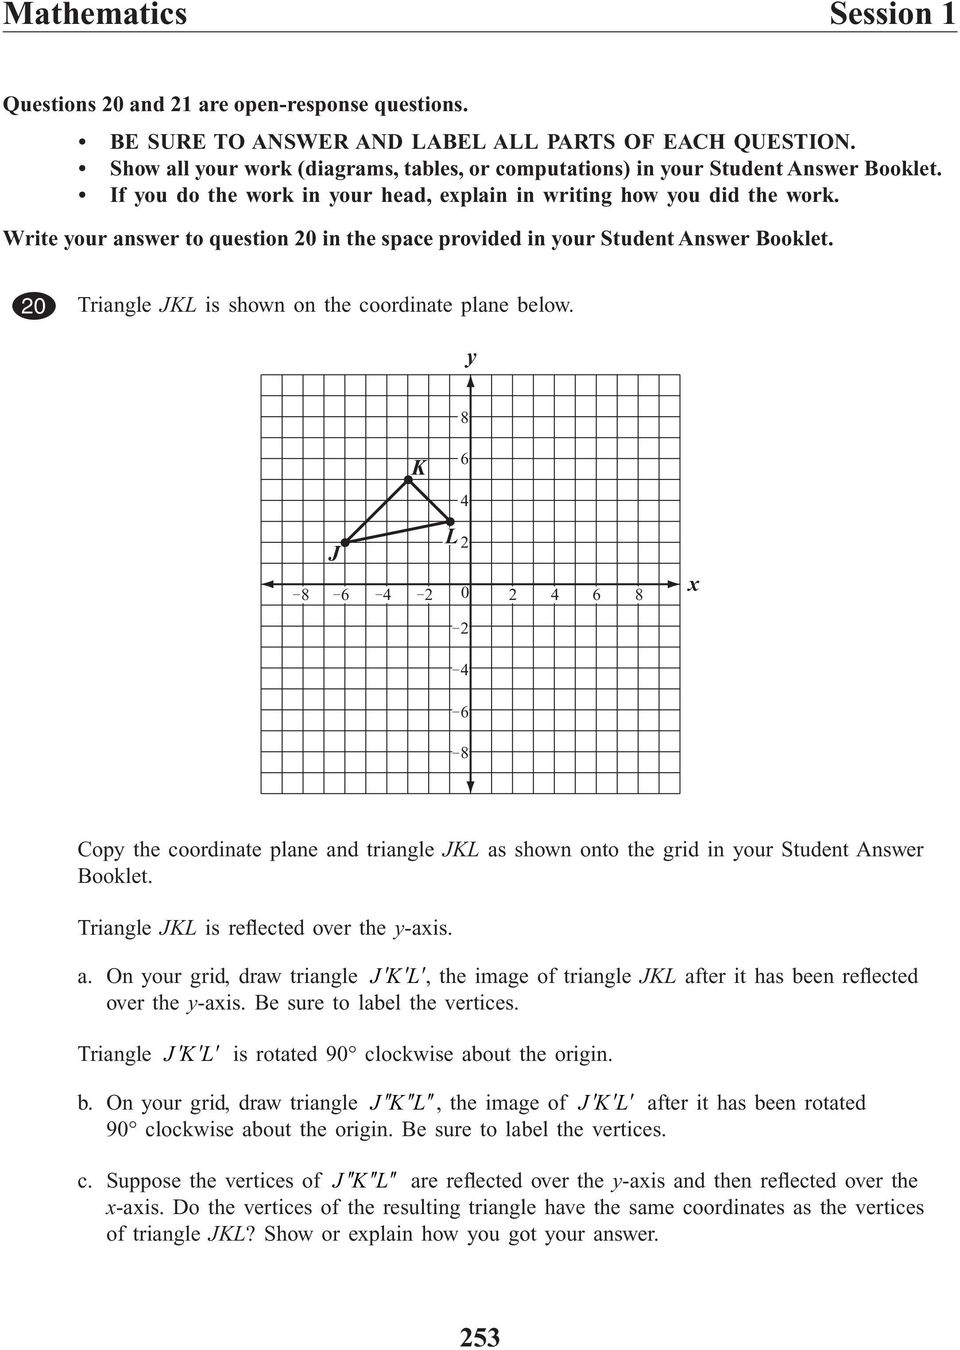 Write your answer to question 20 in the space provided in your Student Answer Booklet. ID:285593 CMC308_JKL.eps, CMC308_JK Common EQ 20 Triangle JKL is shown on the coordinate plane below.